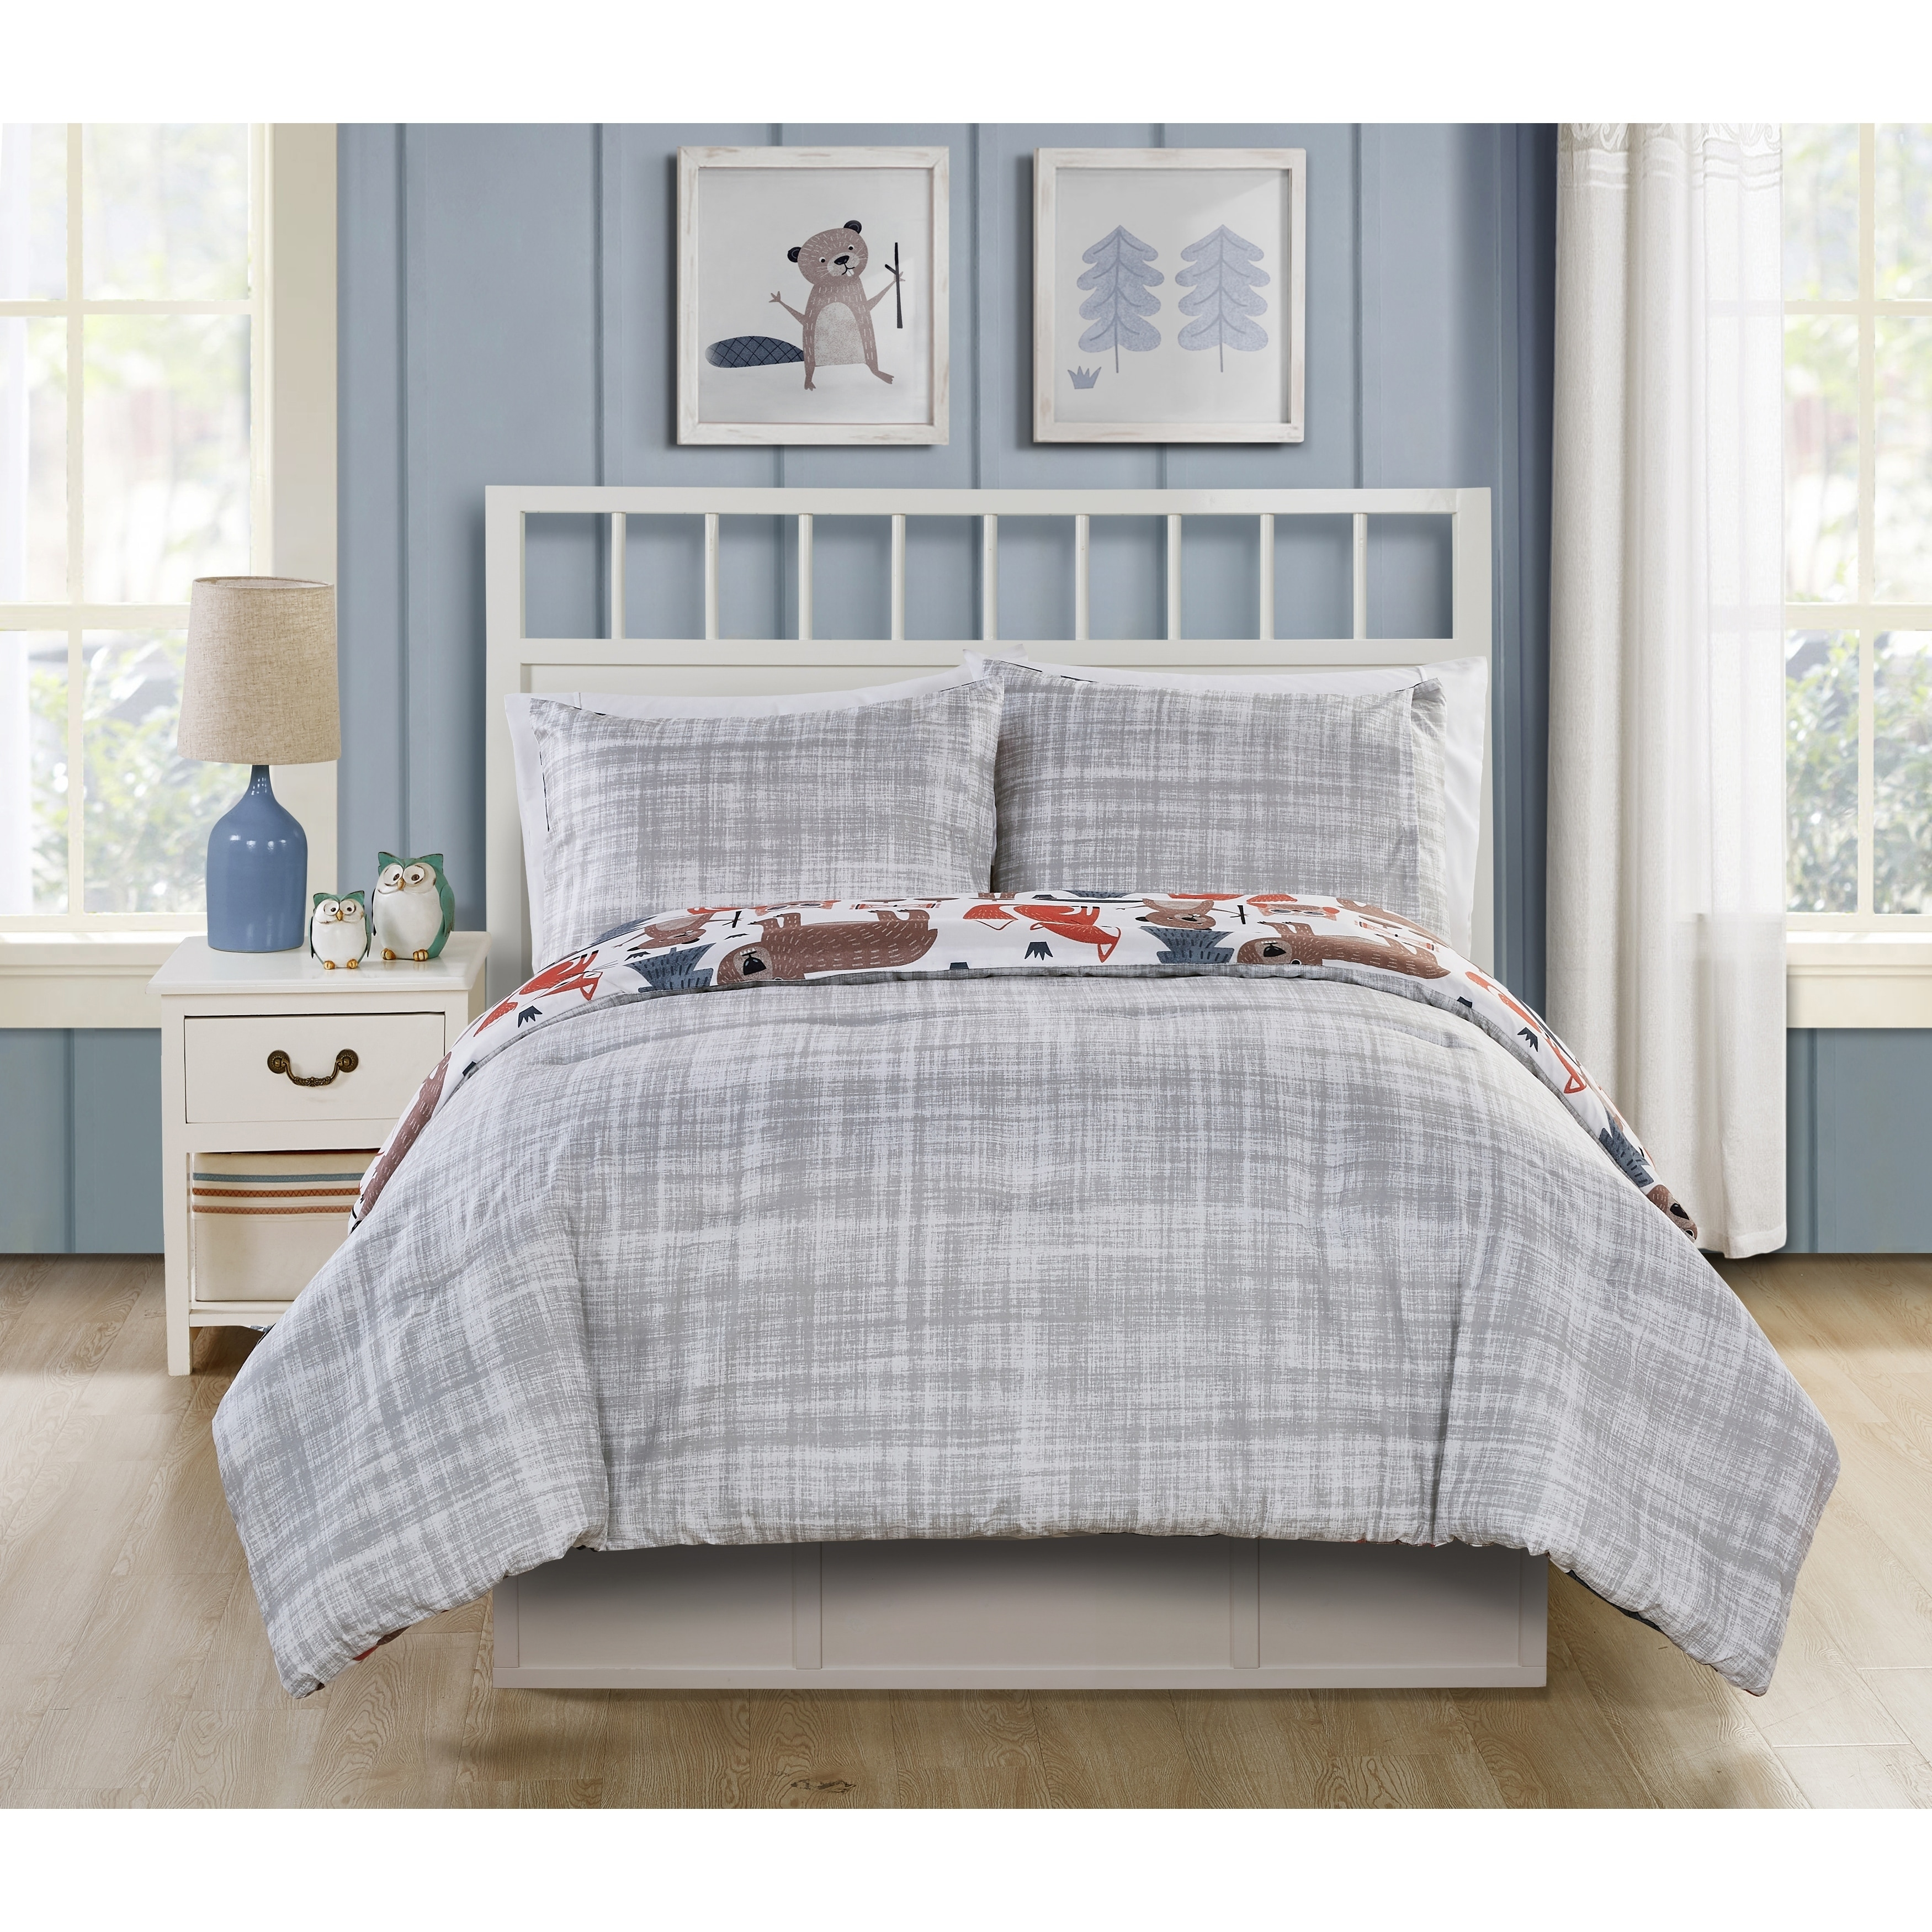 VCNY-Home-Little-Campers-Comforter-Set thumbnail 6